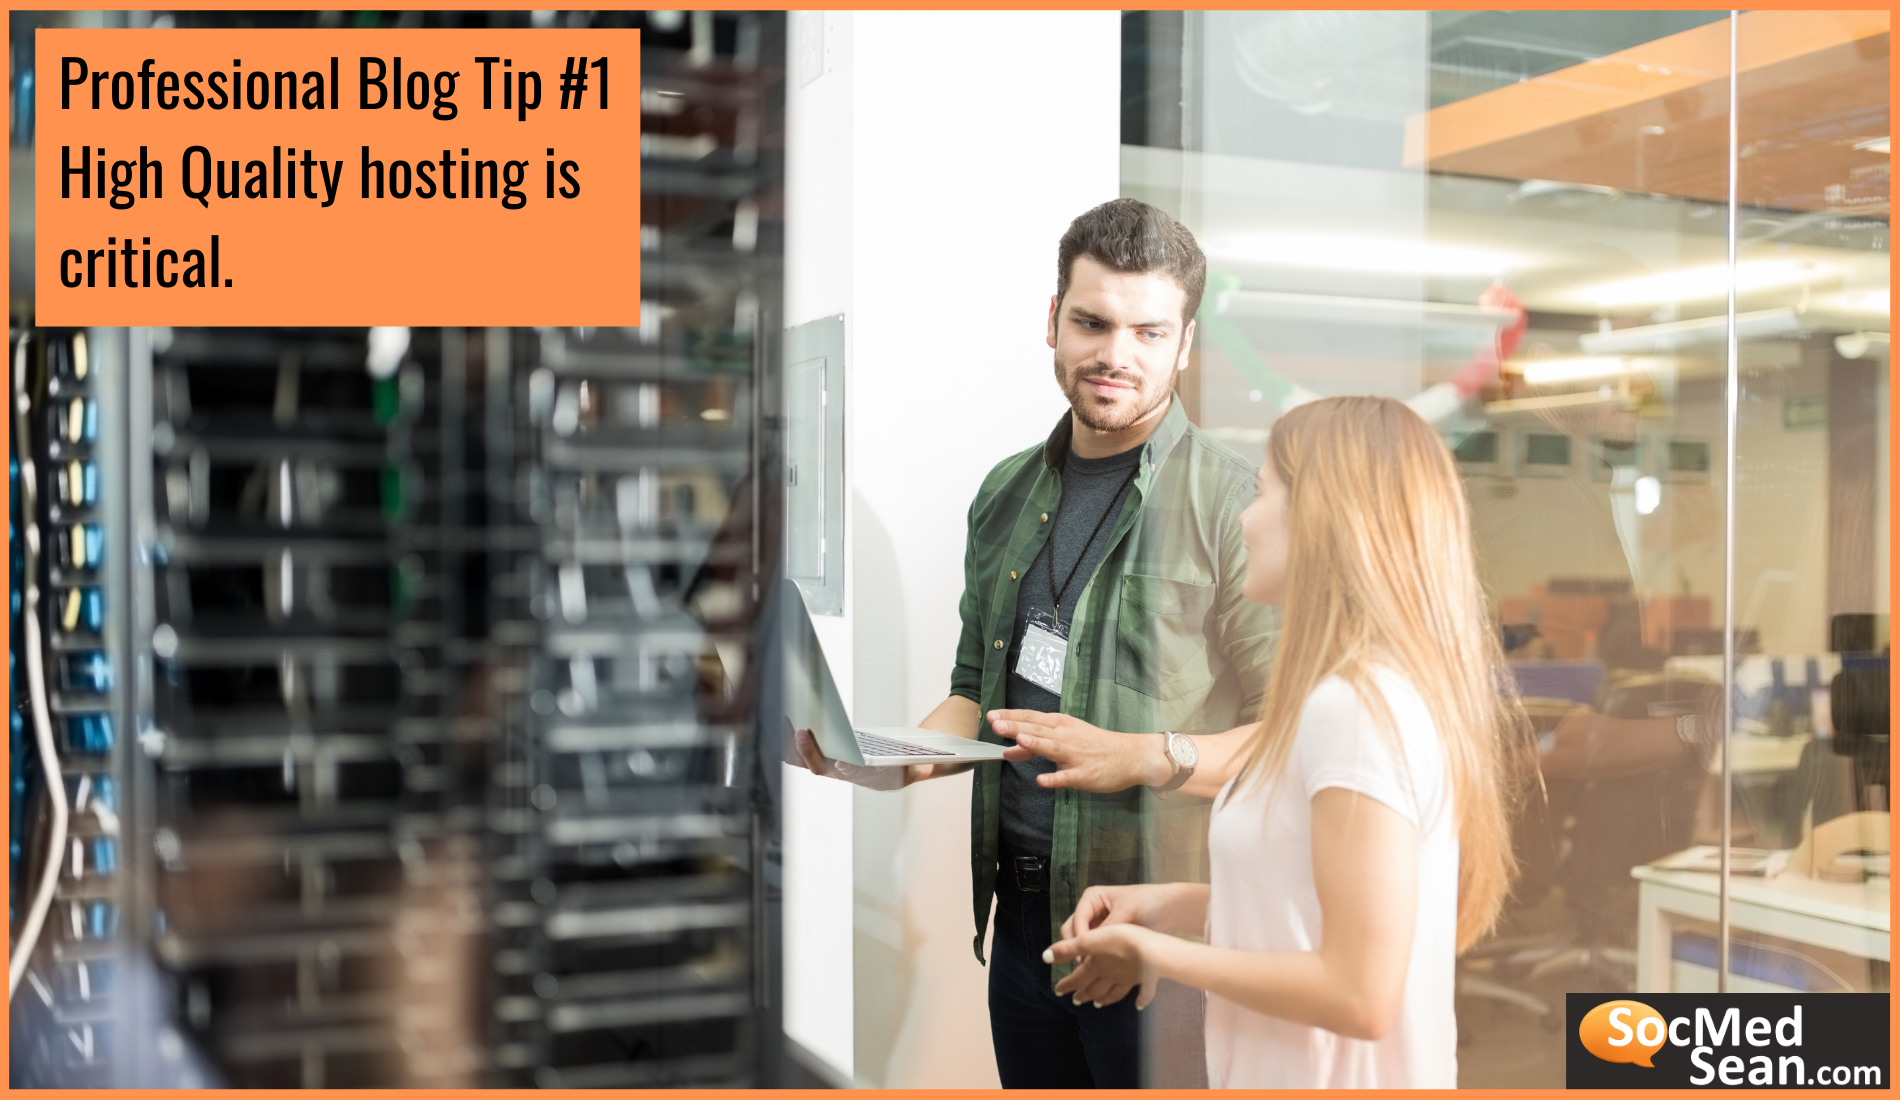 SocMedSean - High quality hosting is critical to your blogging success